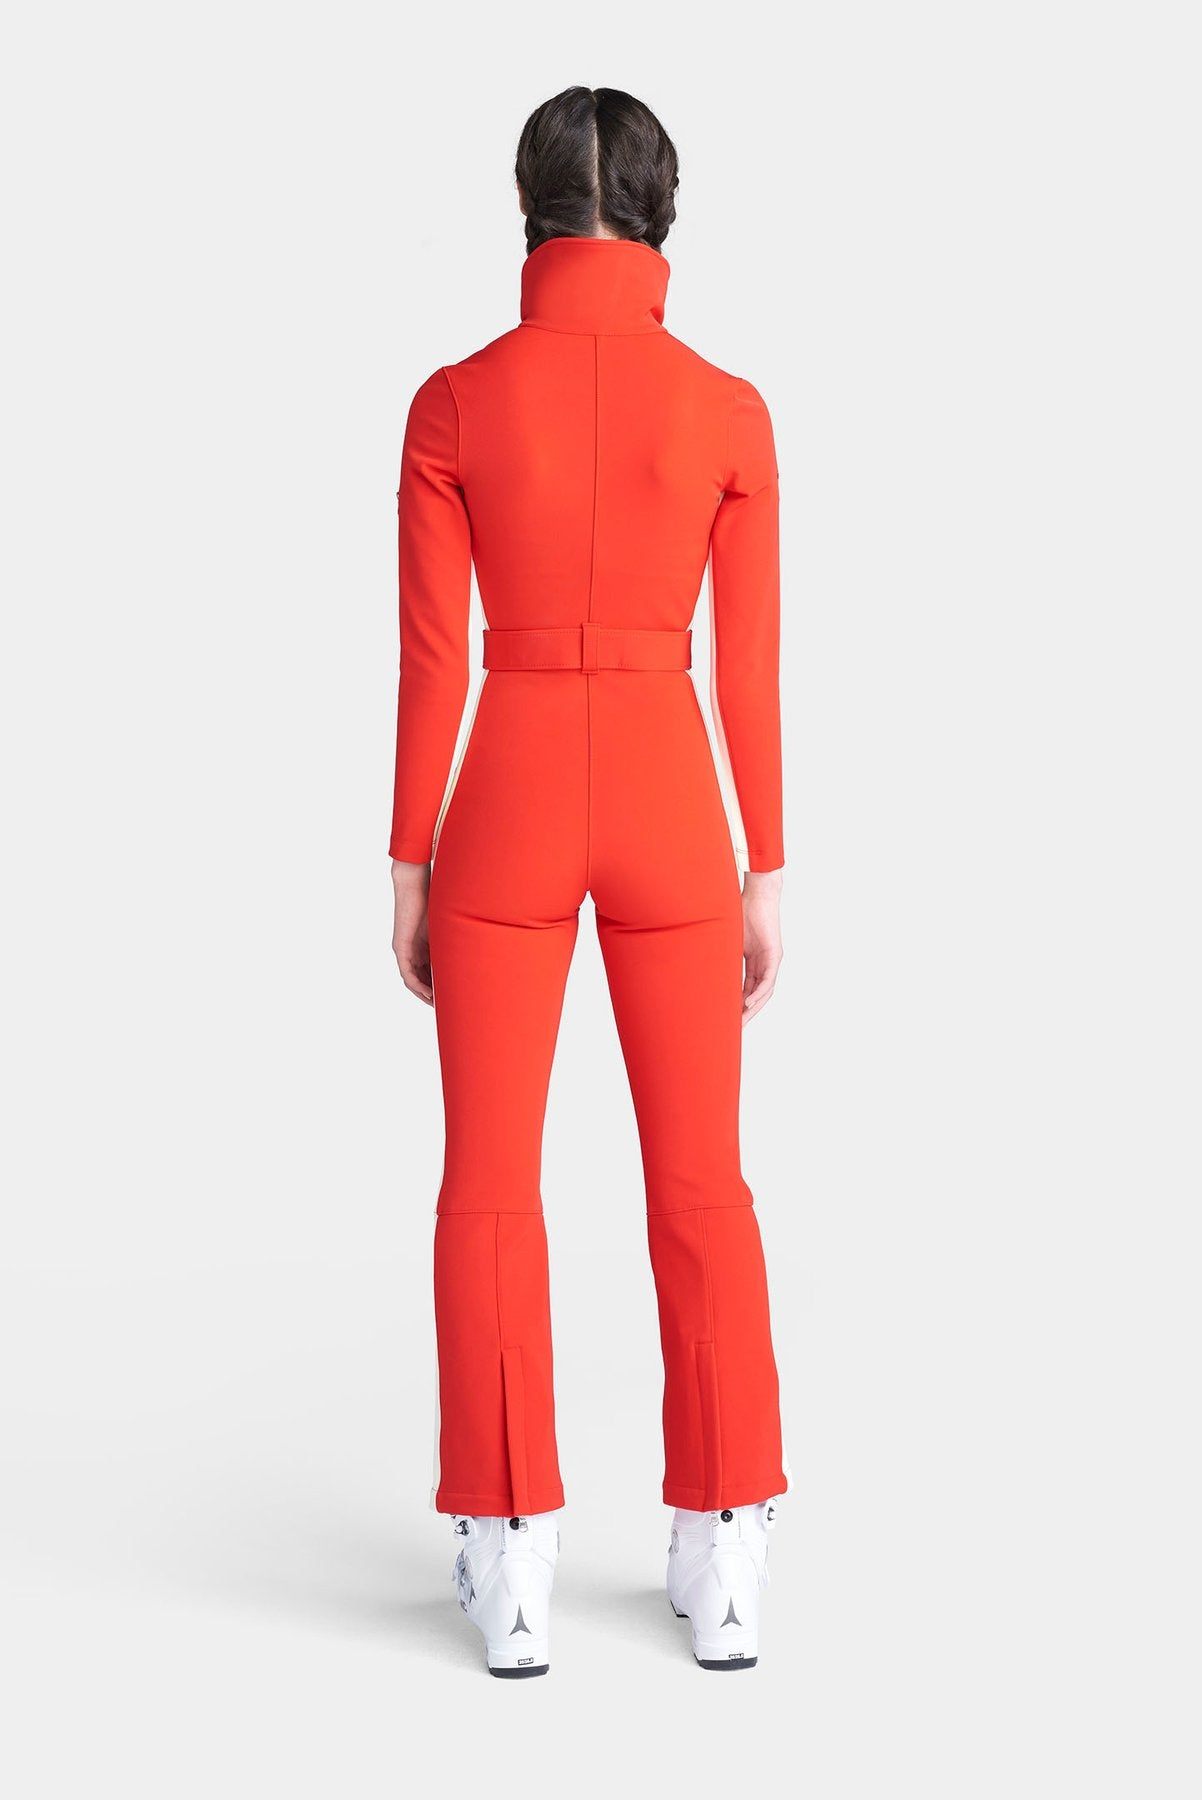 The Aspen OTB (Over the Boot) Ski Suit - Fiery Red